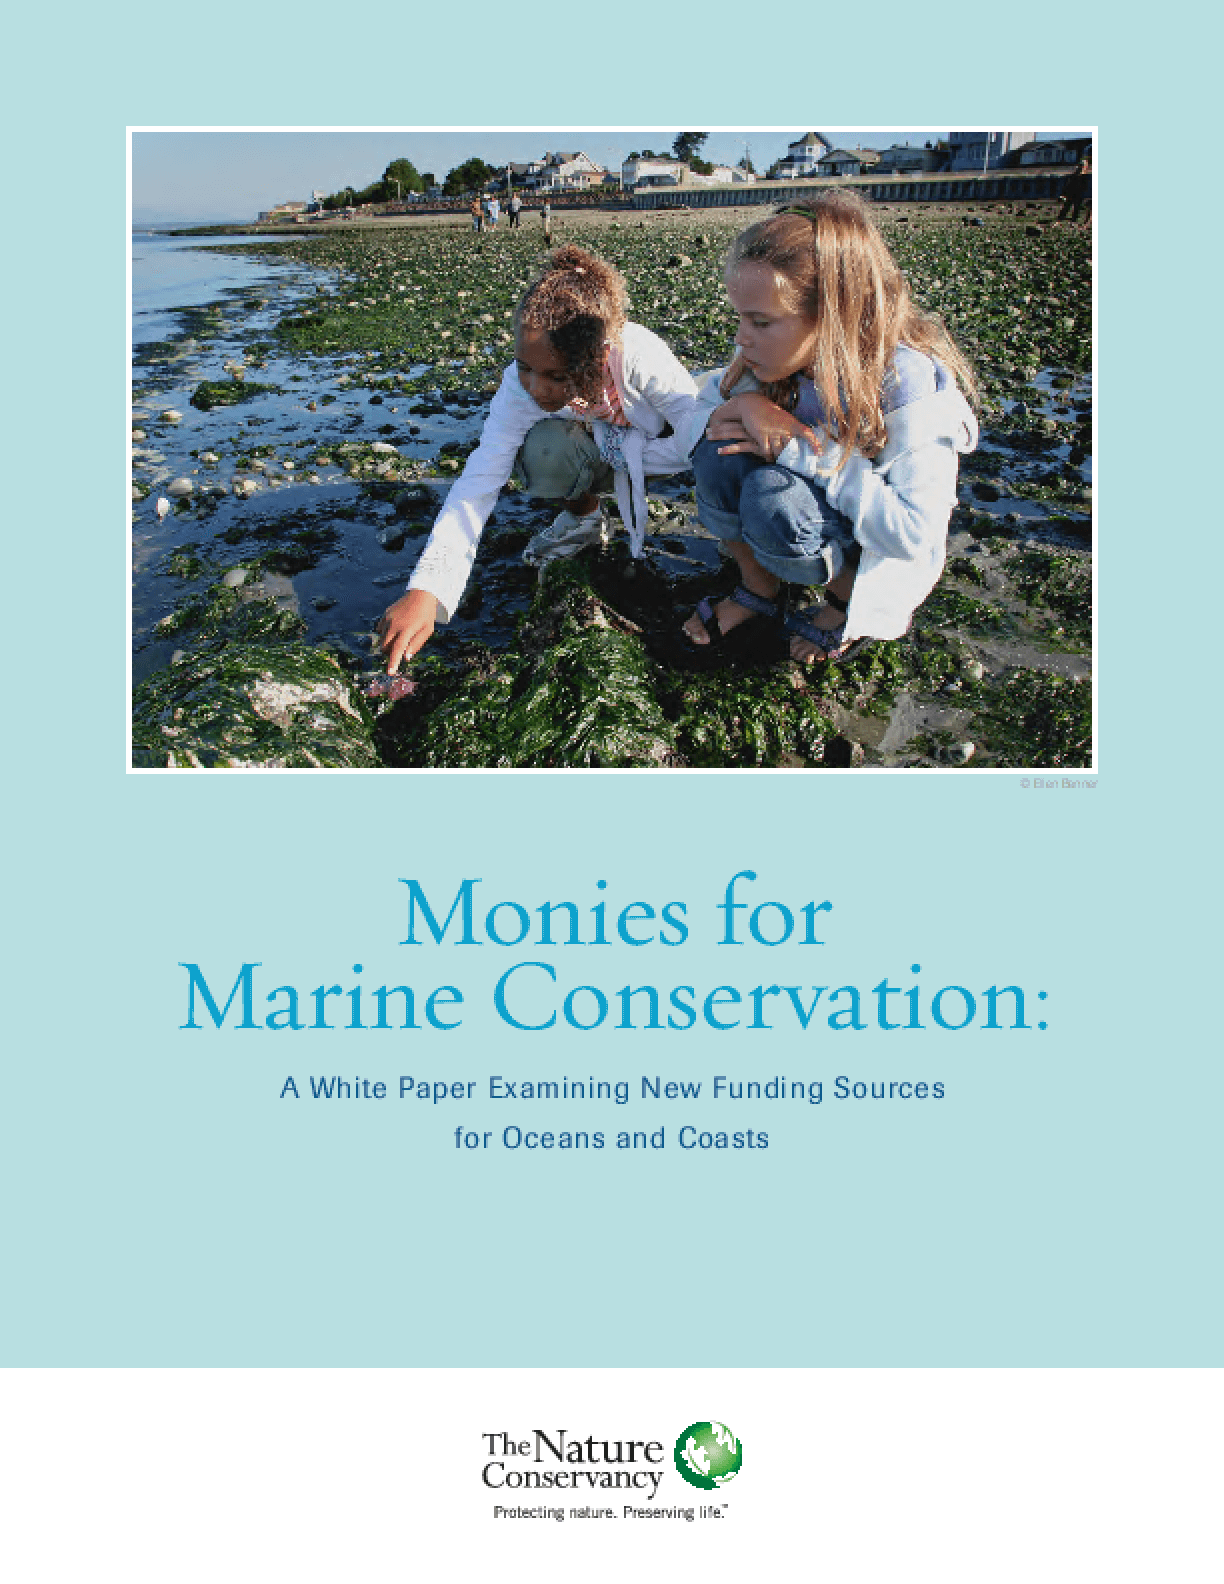 Monies for Marine Conservation: A White Paper Examining New Funding Sources for Oceans and Coasts